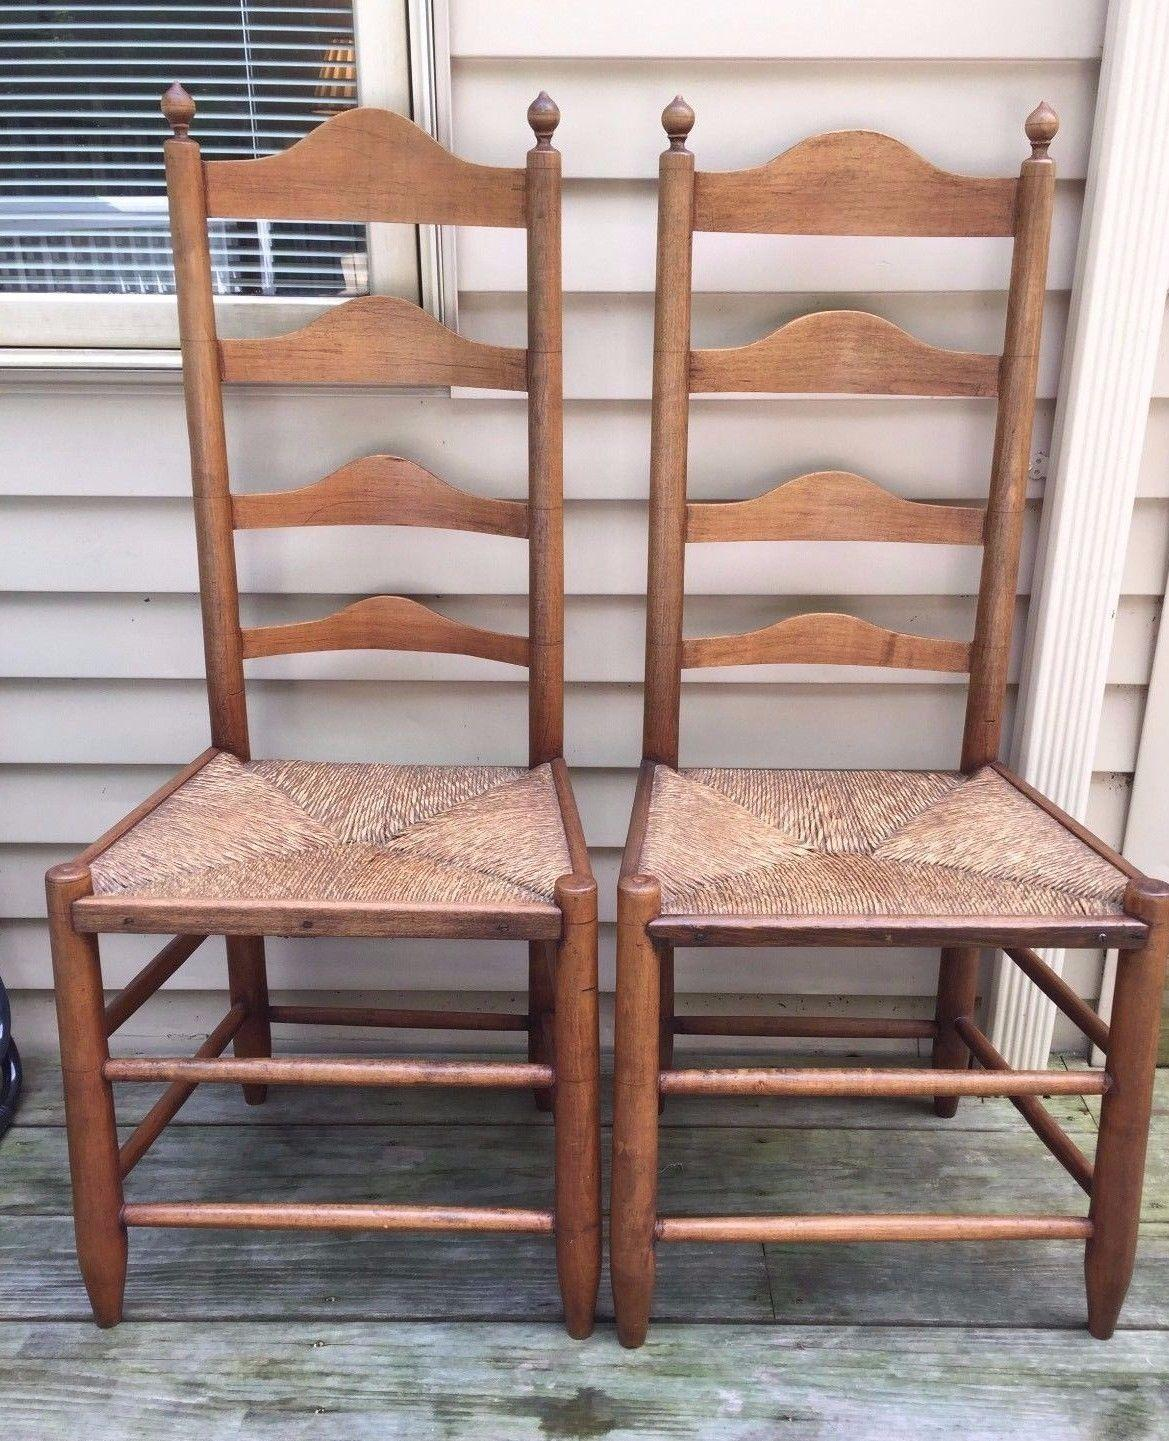 Antique Pair of 18th Century Ladderback Chairs Rush Seats American